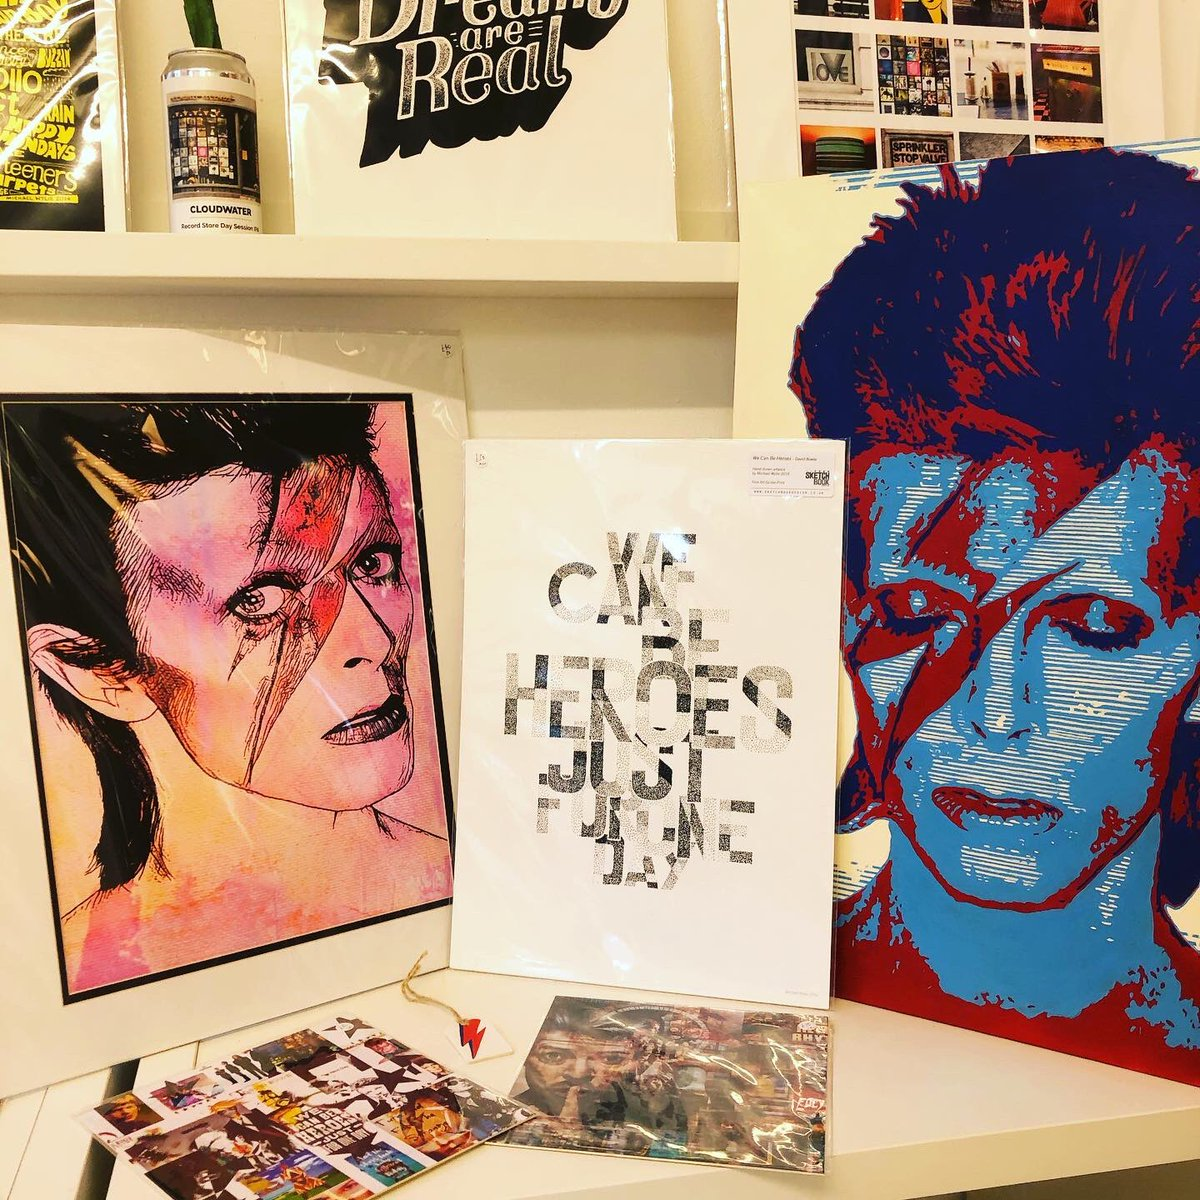 Someone asked yesterday did we have any Ziggy Stardust inspired art work? Hell yea! We have prints, David Bowie artwork and lyric prints, Ziggy tags and an acrylic canvas original! ⚡️⚡️⚡️You can find lots of unique gifts here at NQ @Afflecksfox 💫 by 4 fab NQ creatives